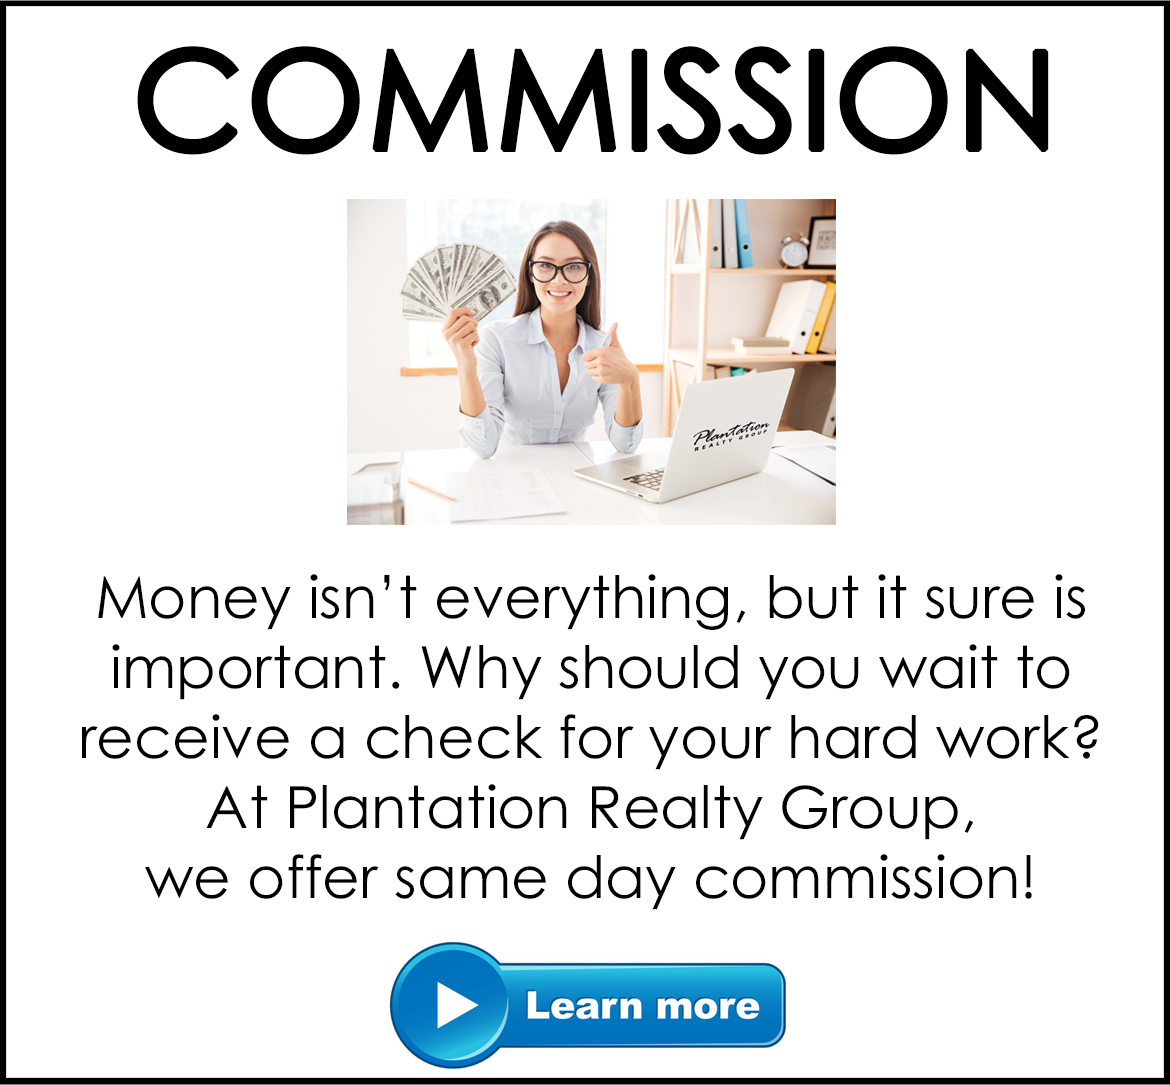 Join Plantation Realty Group Commission Myrtle Beach South Carolina